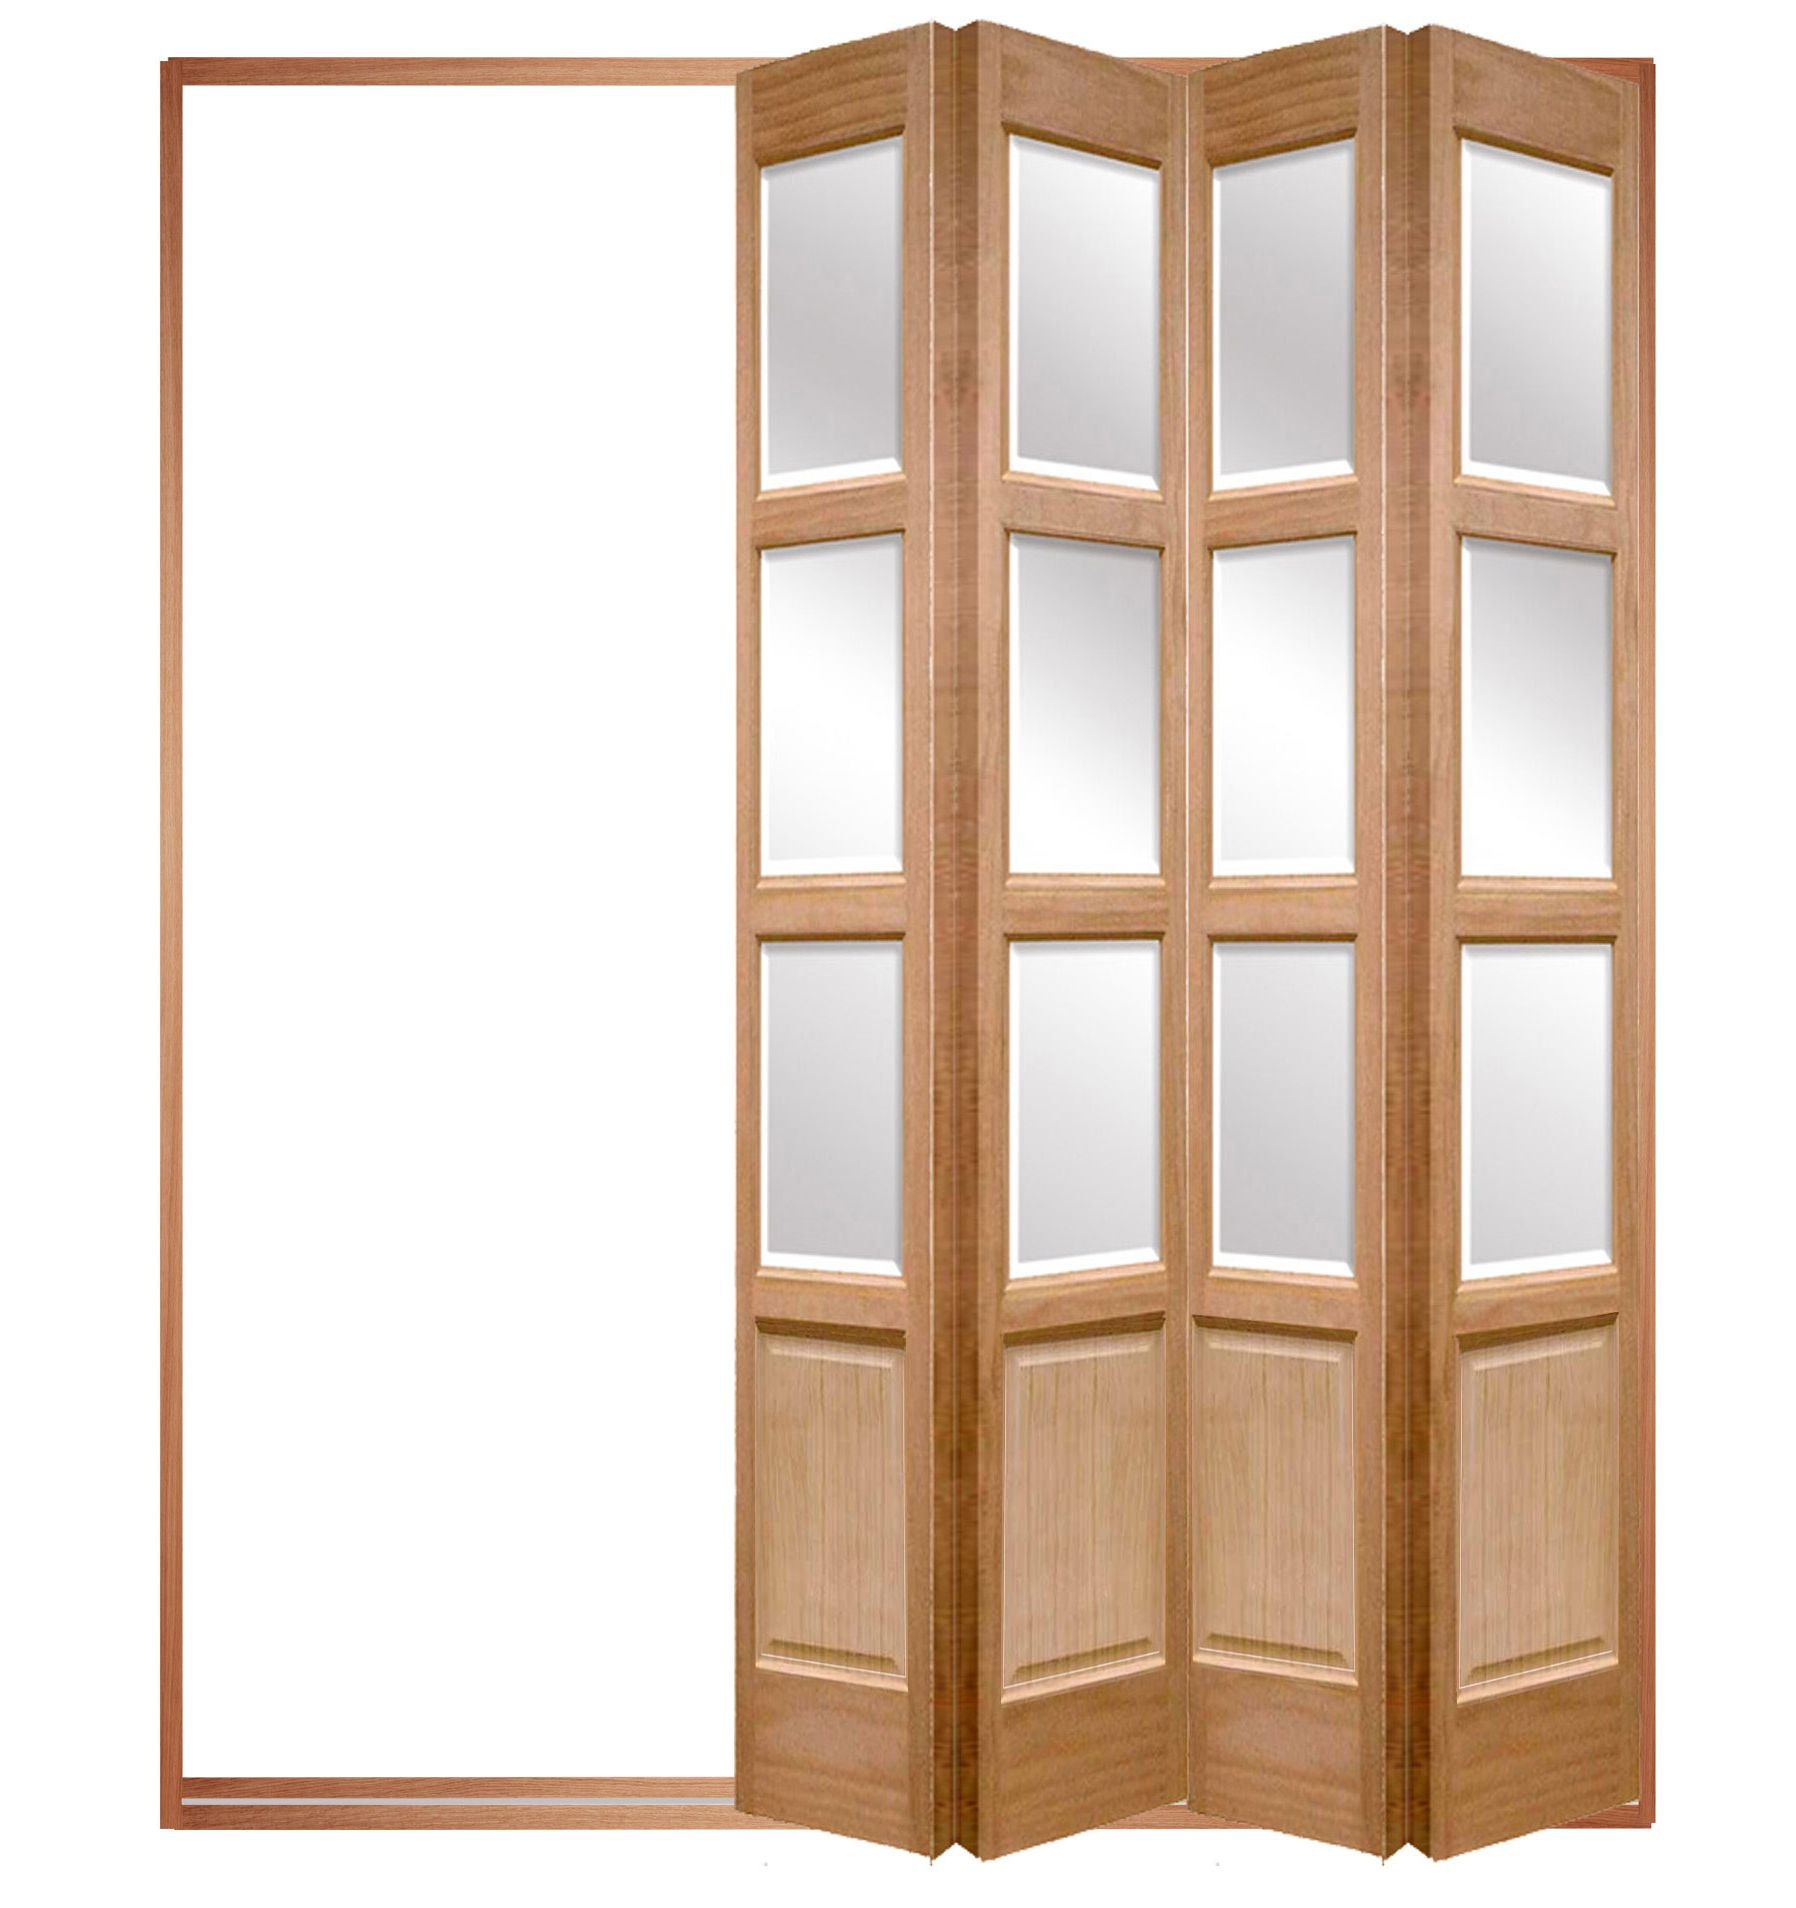 Wooden folding interior door